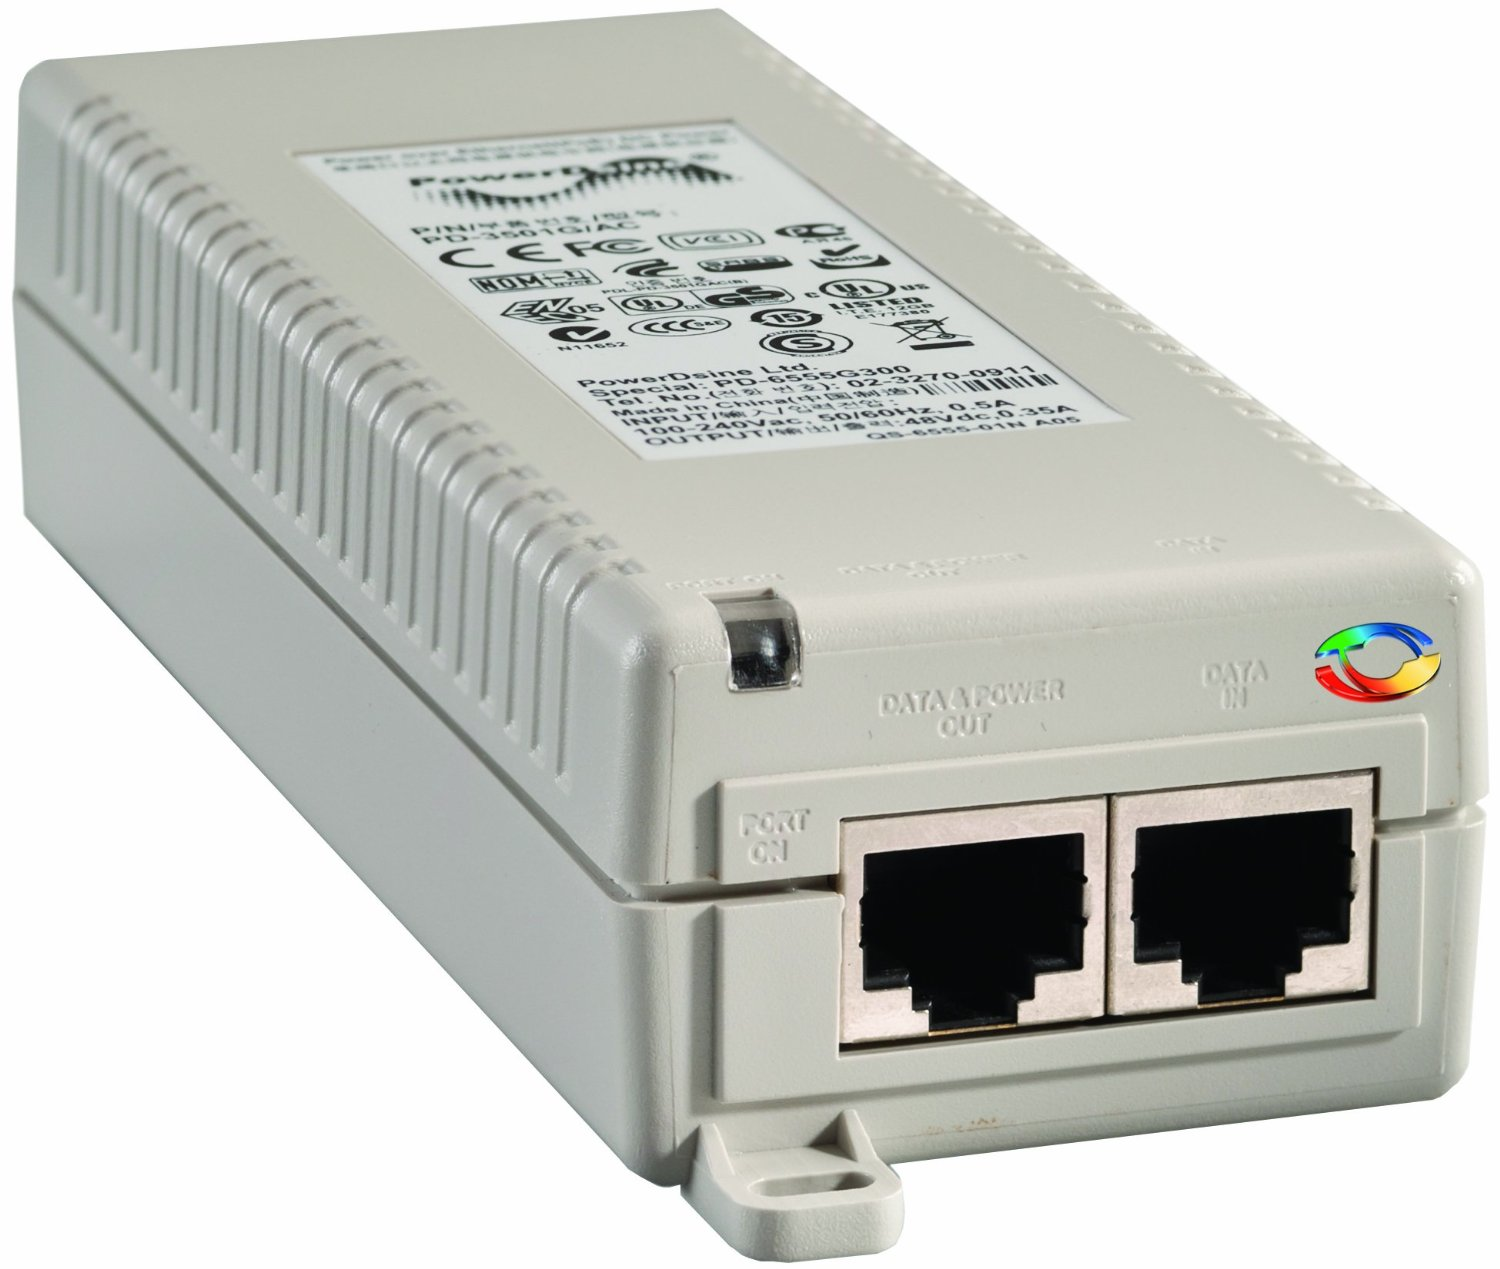 1 Port POE Switch to send Power to the HD IP Camera